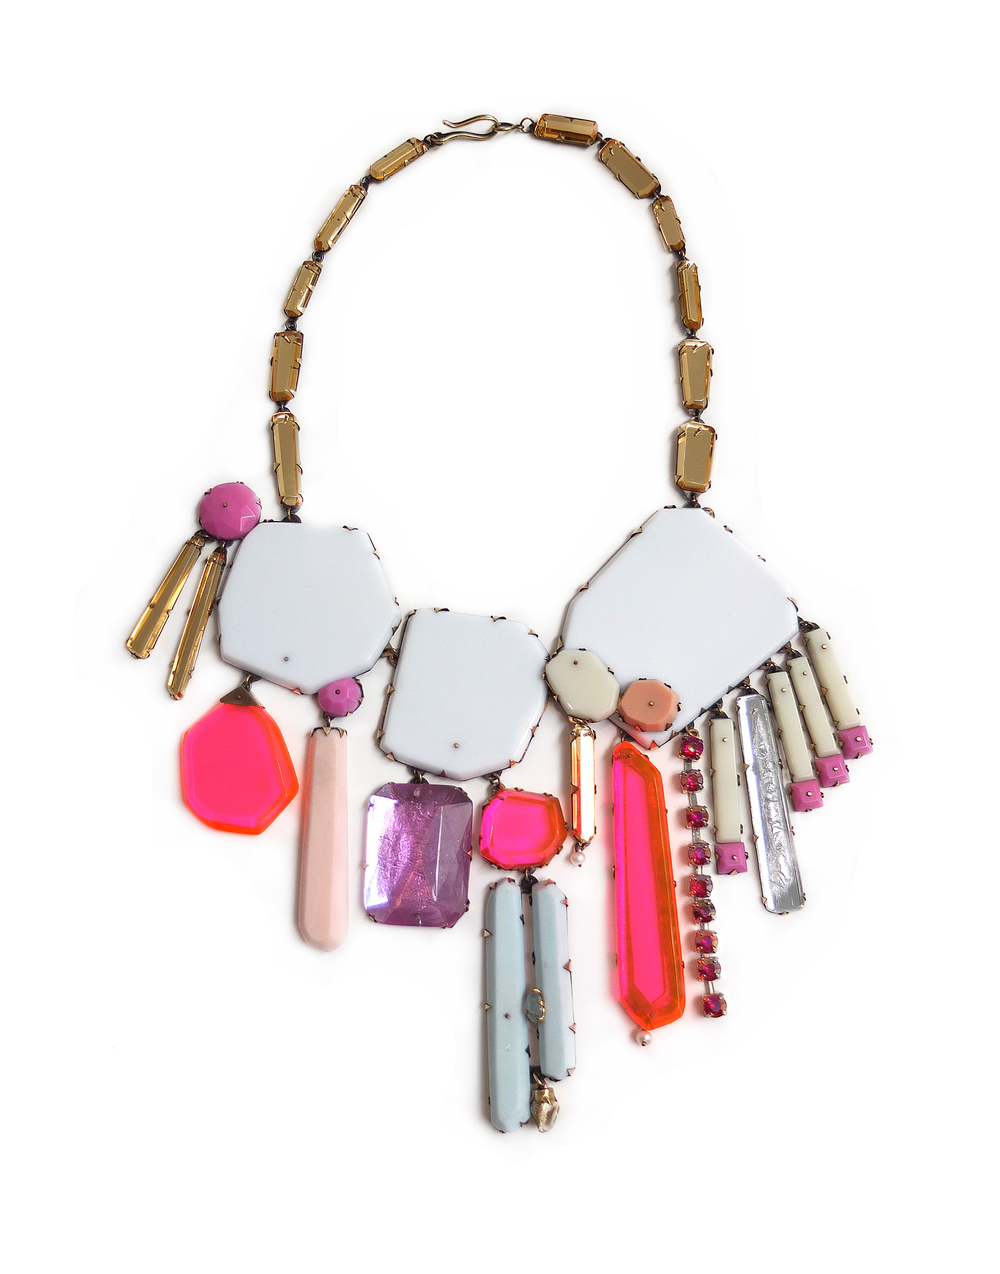 N2 Couppee, Nikki white & pink gem necklace.jpg